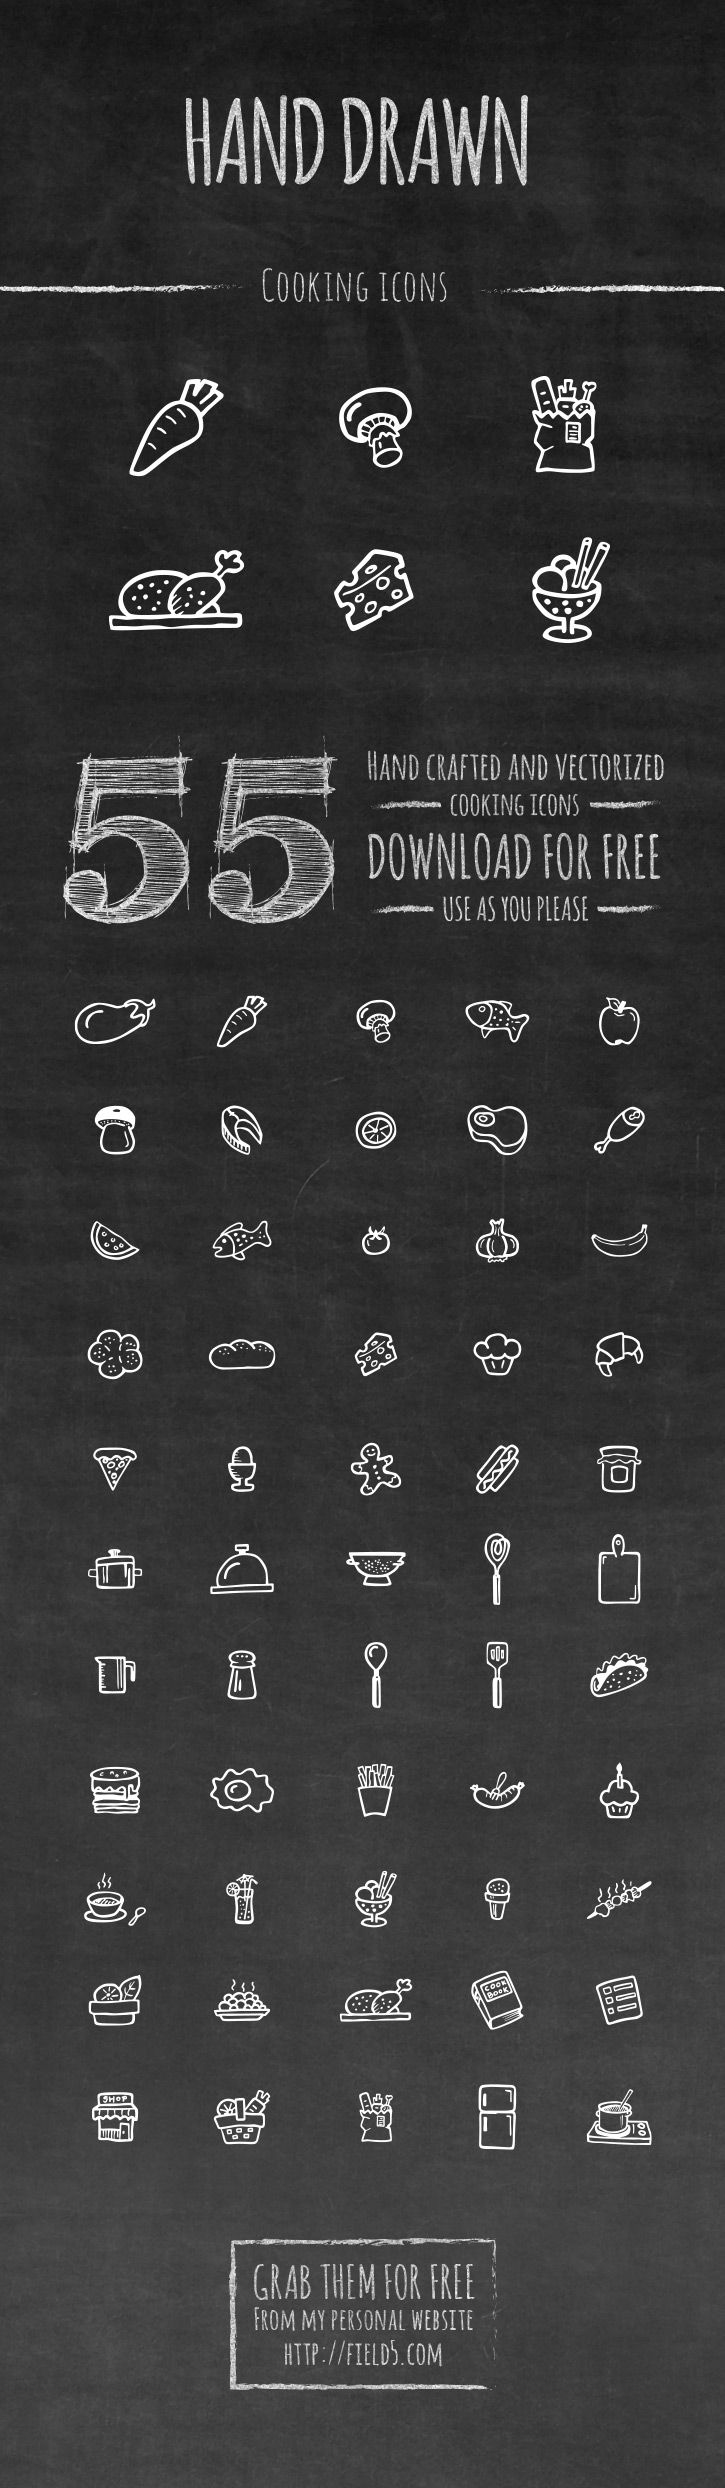 Cooking icons set - download for free  Grab them while they